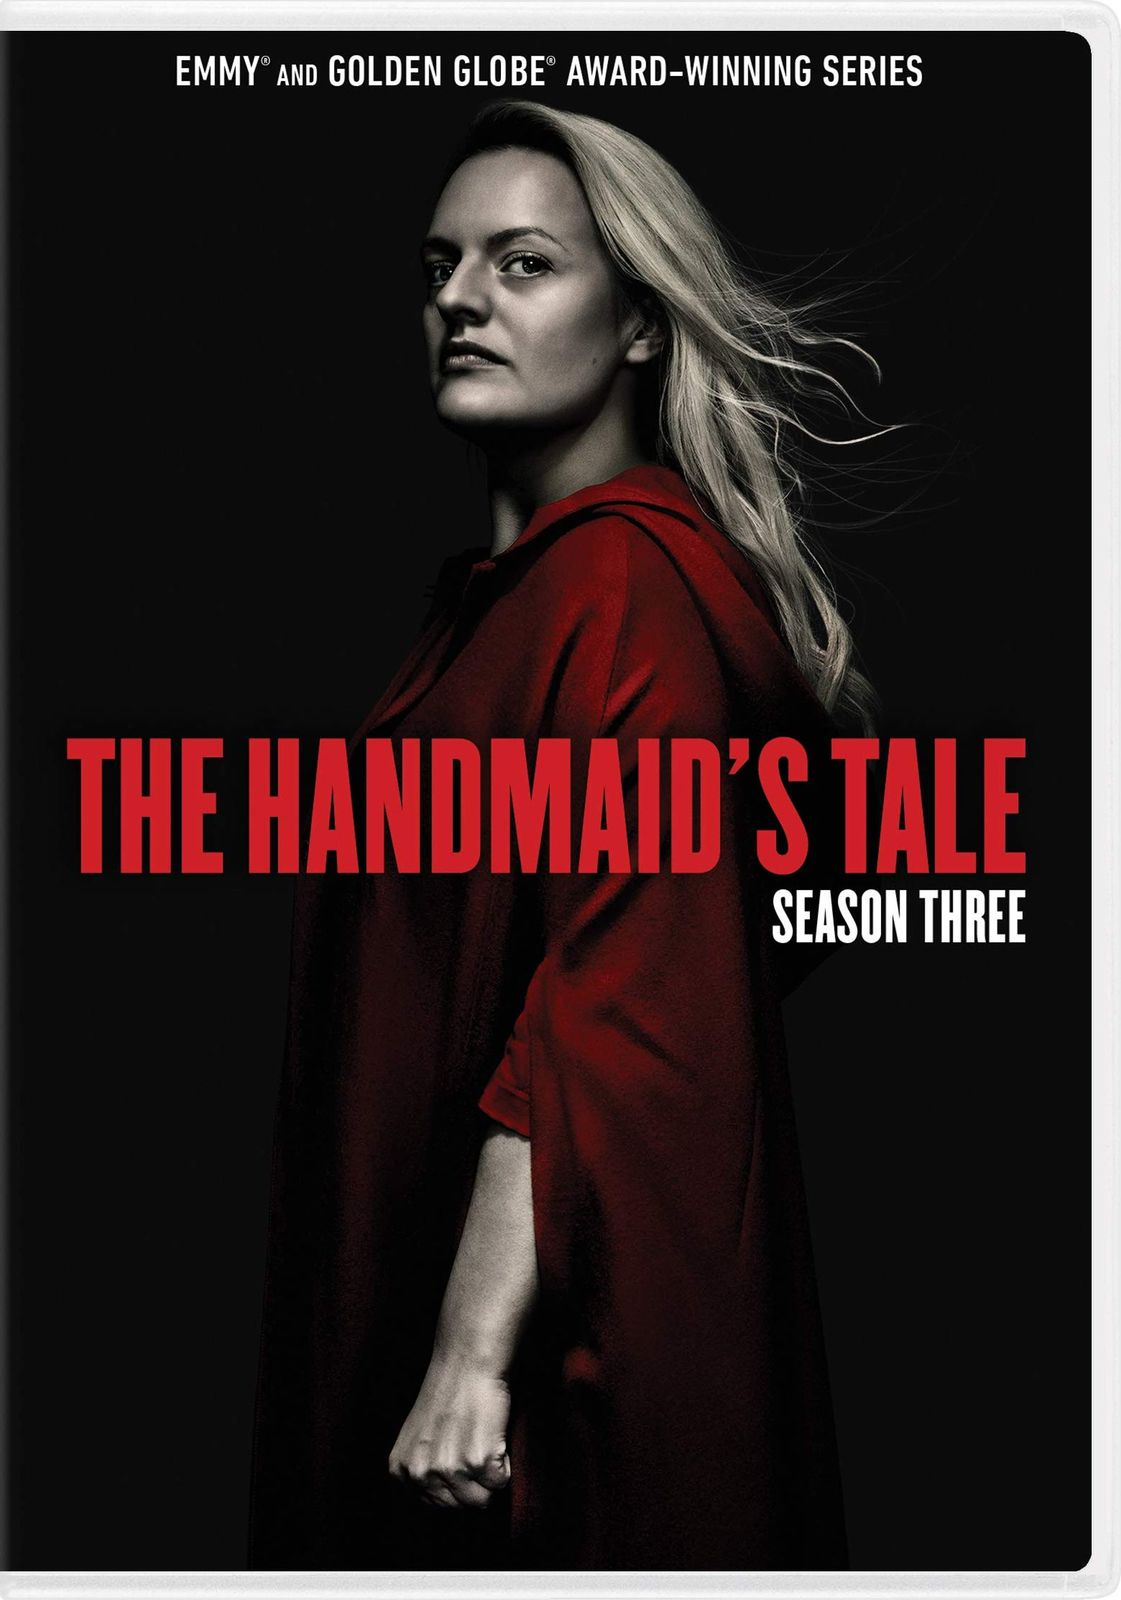 The Handmaids Tale - Season 3 on DVD image